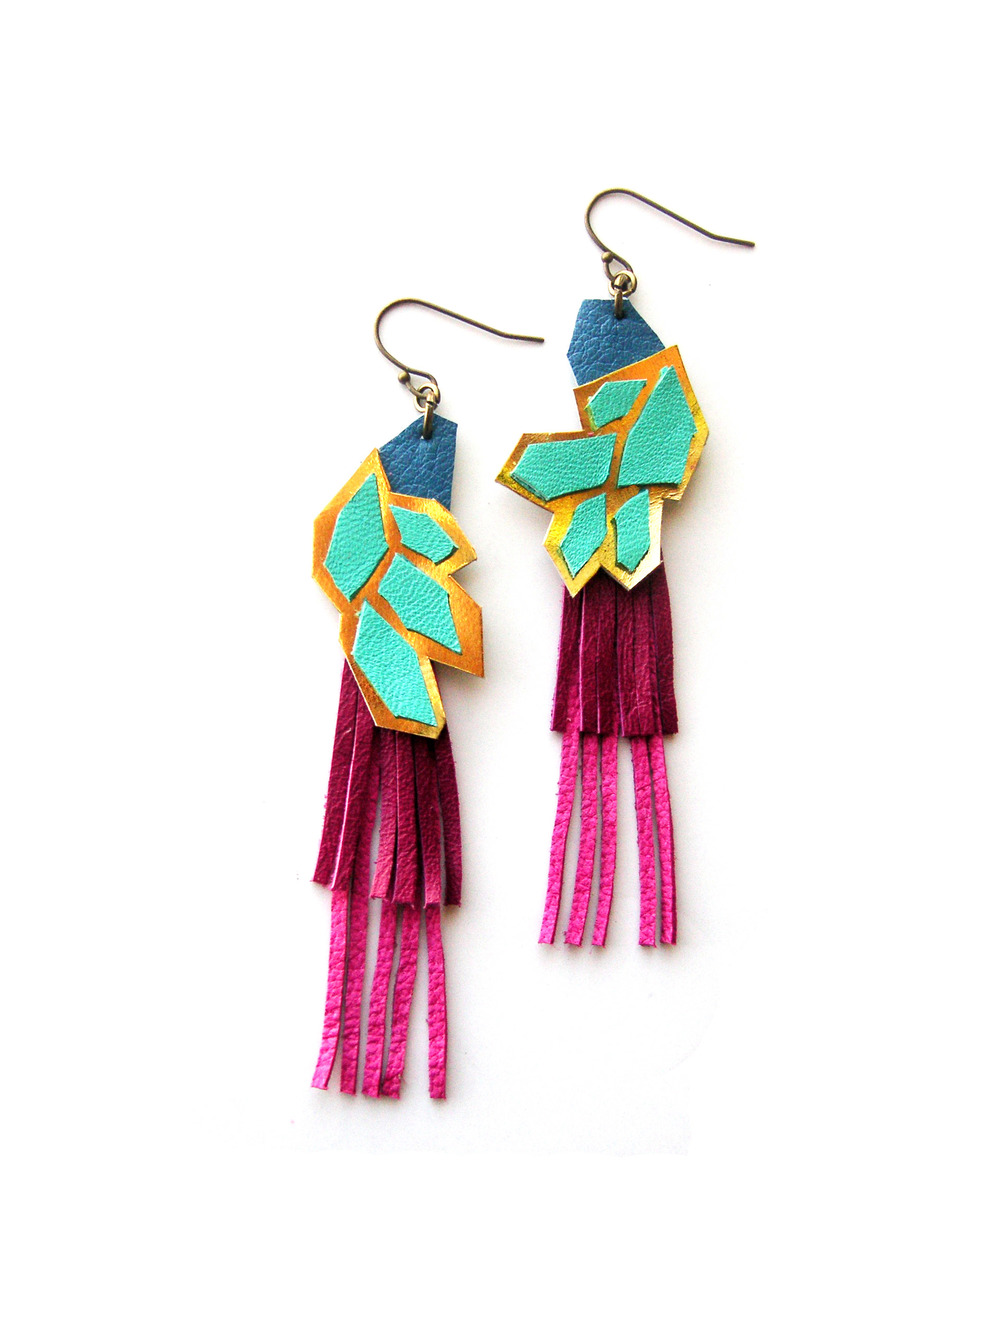 Geometric Leather Earrings Gold and Pink Hexagons.jpg